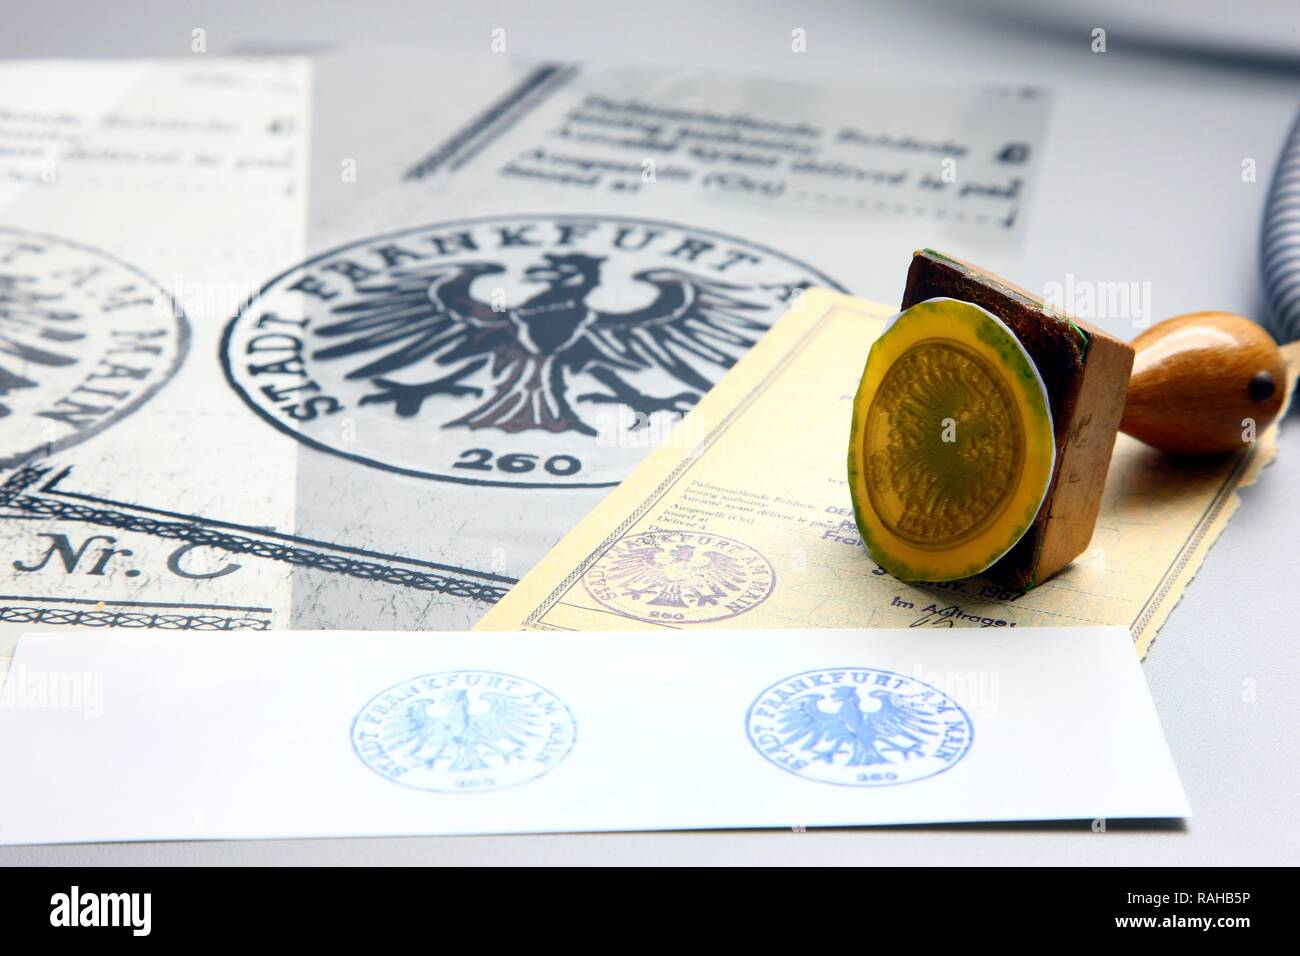 Kriminaltechnisches Institut, KTI, Forensic Science Institute, documents department, verification of documents to detect - Stock Image